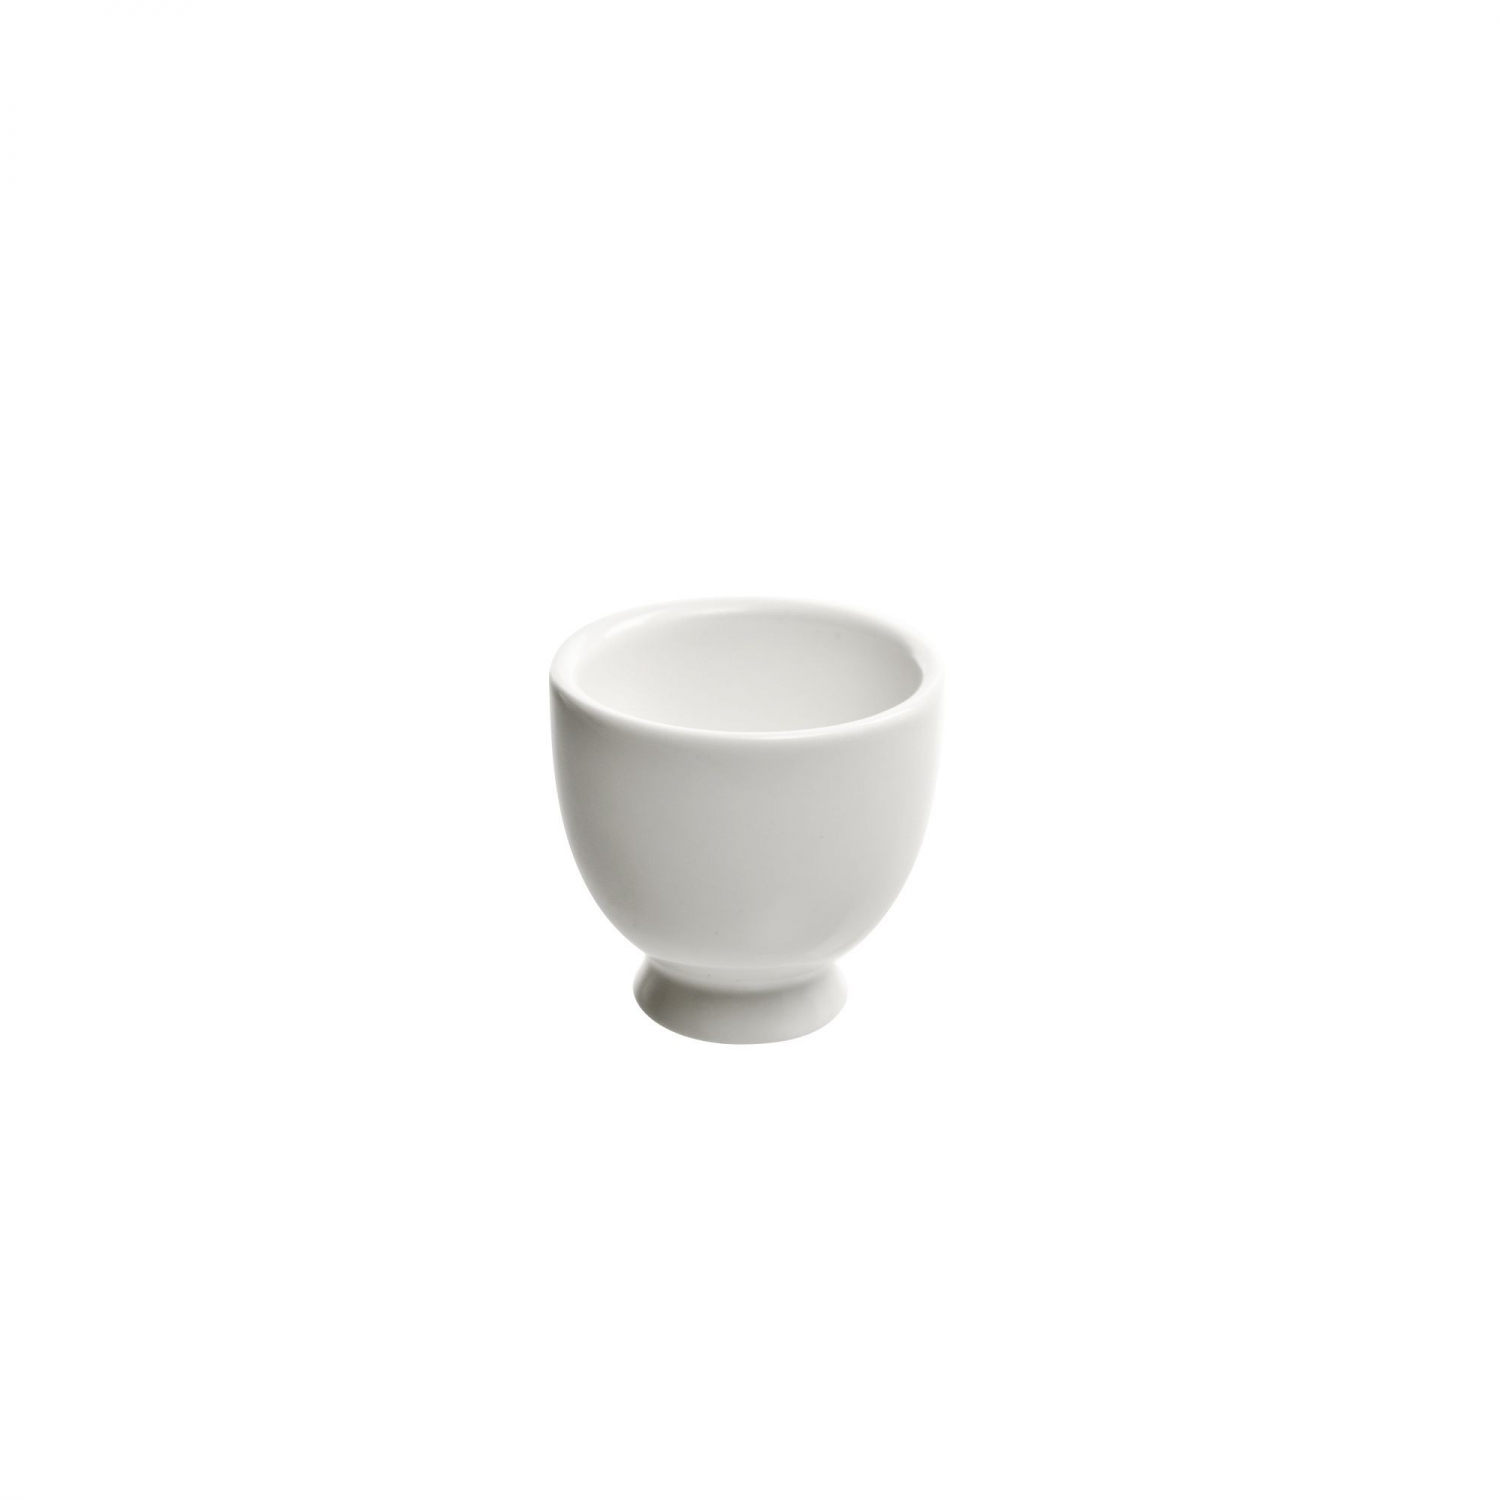 10 Strawberry Street WTR-SAKECUP Whittier Sake Cup 1.5 oz